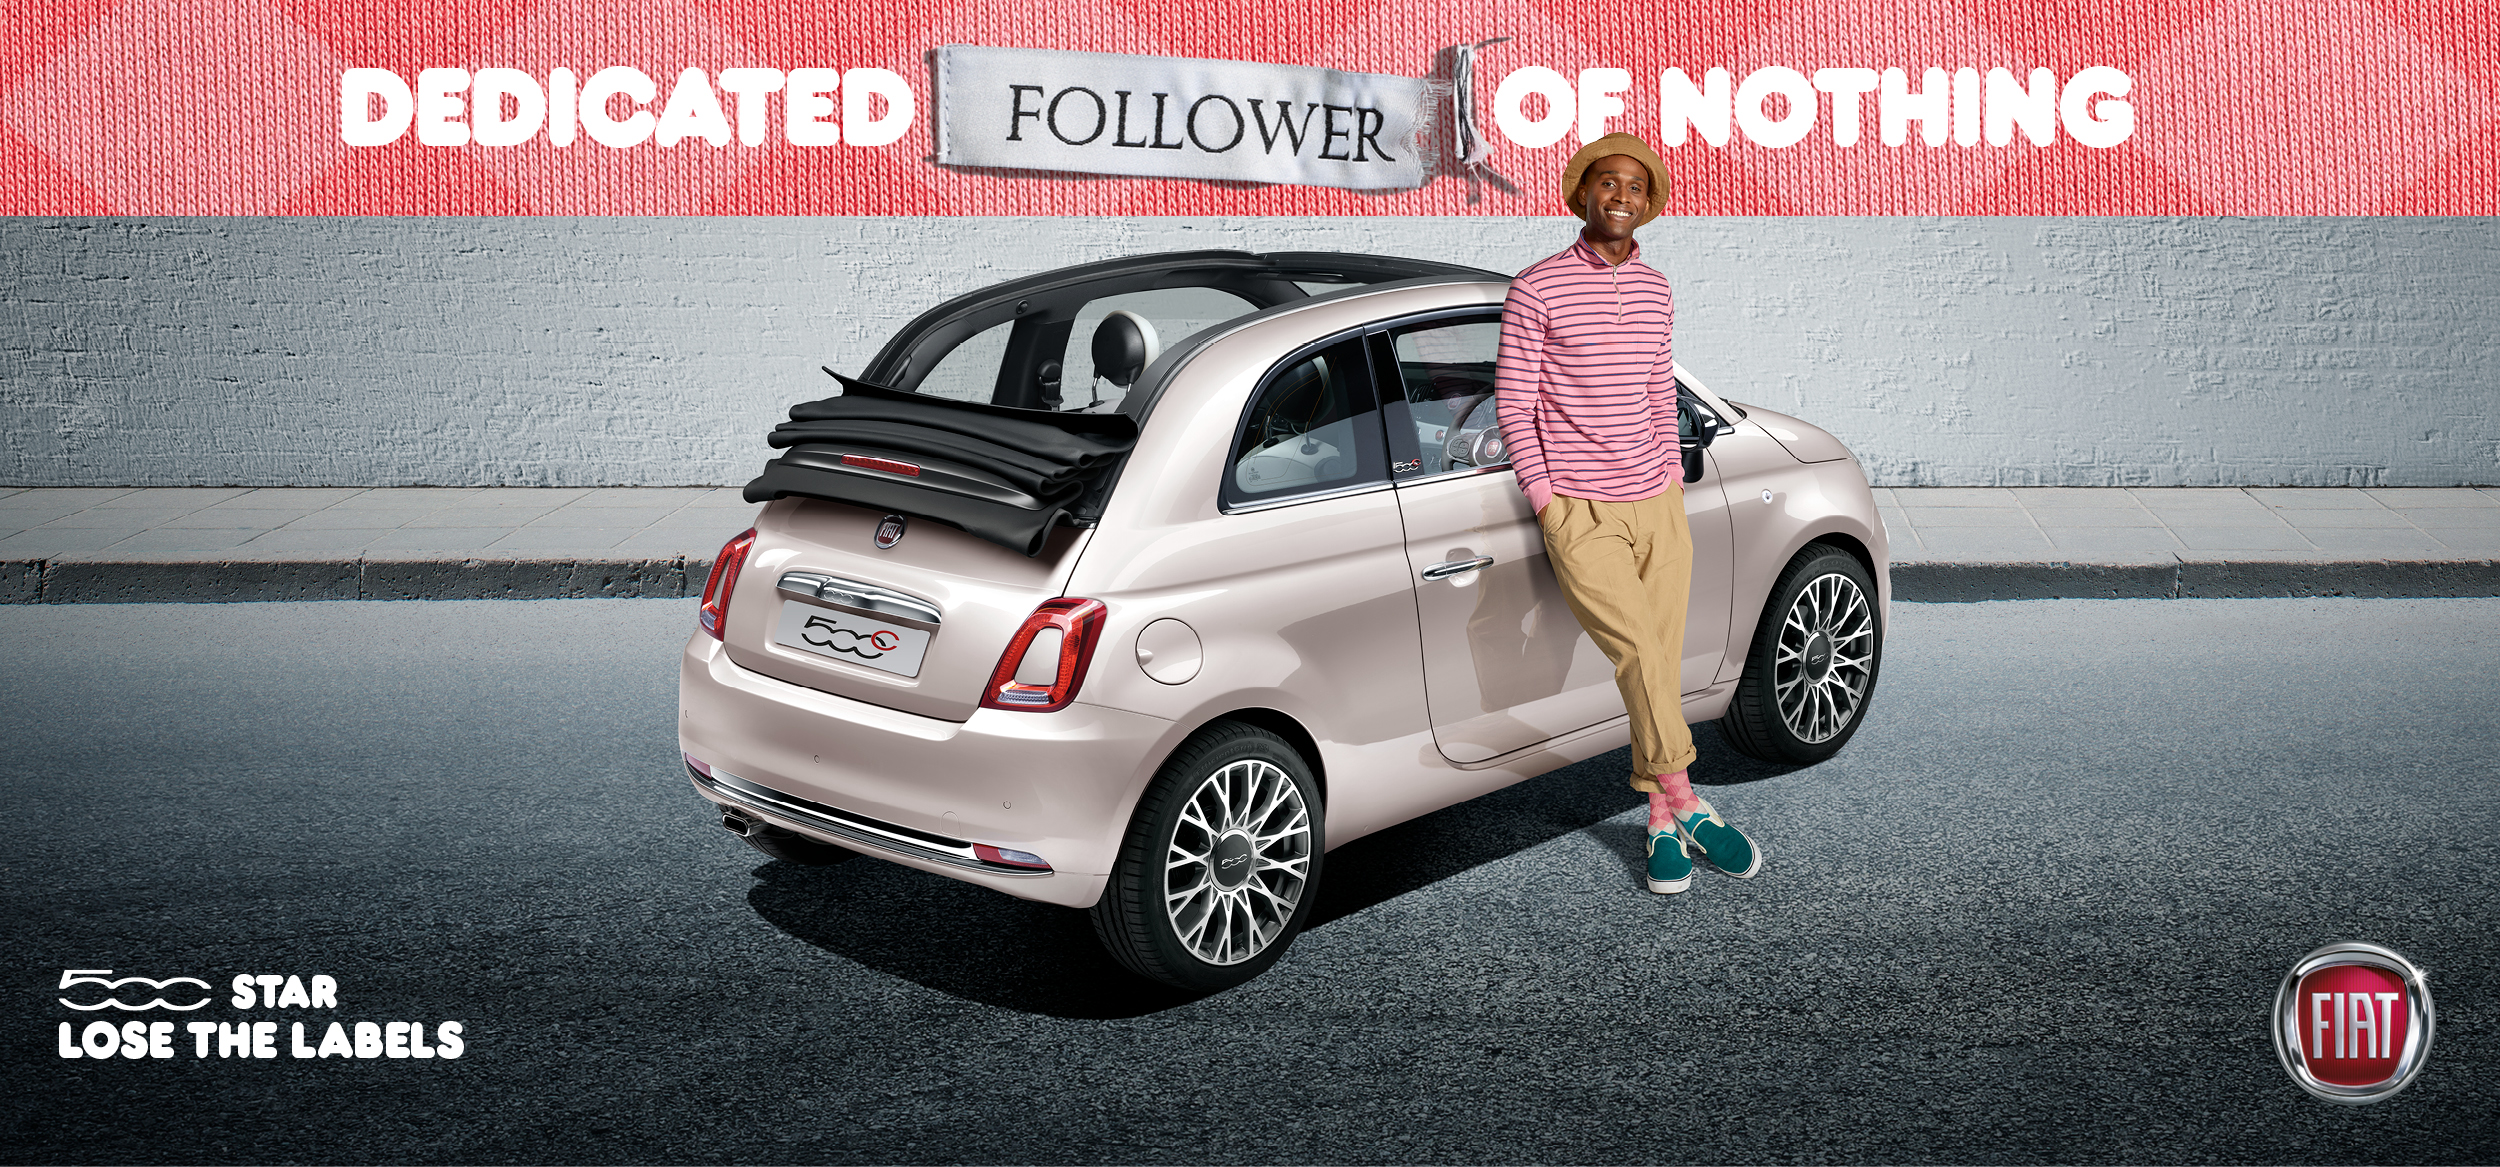 Fiat 500 Celebrates Individuality In Lose The Labels Outdoor